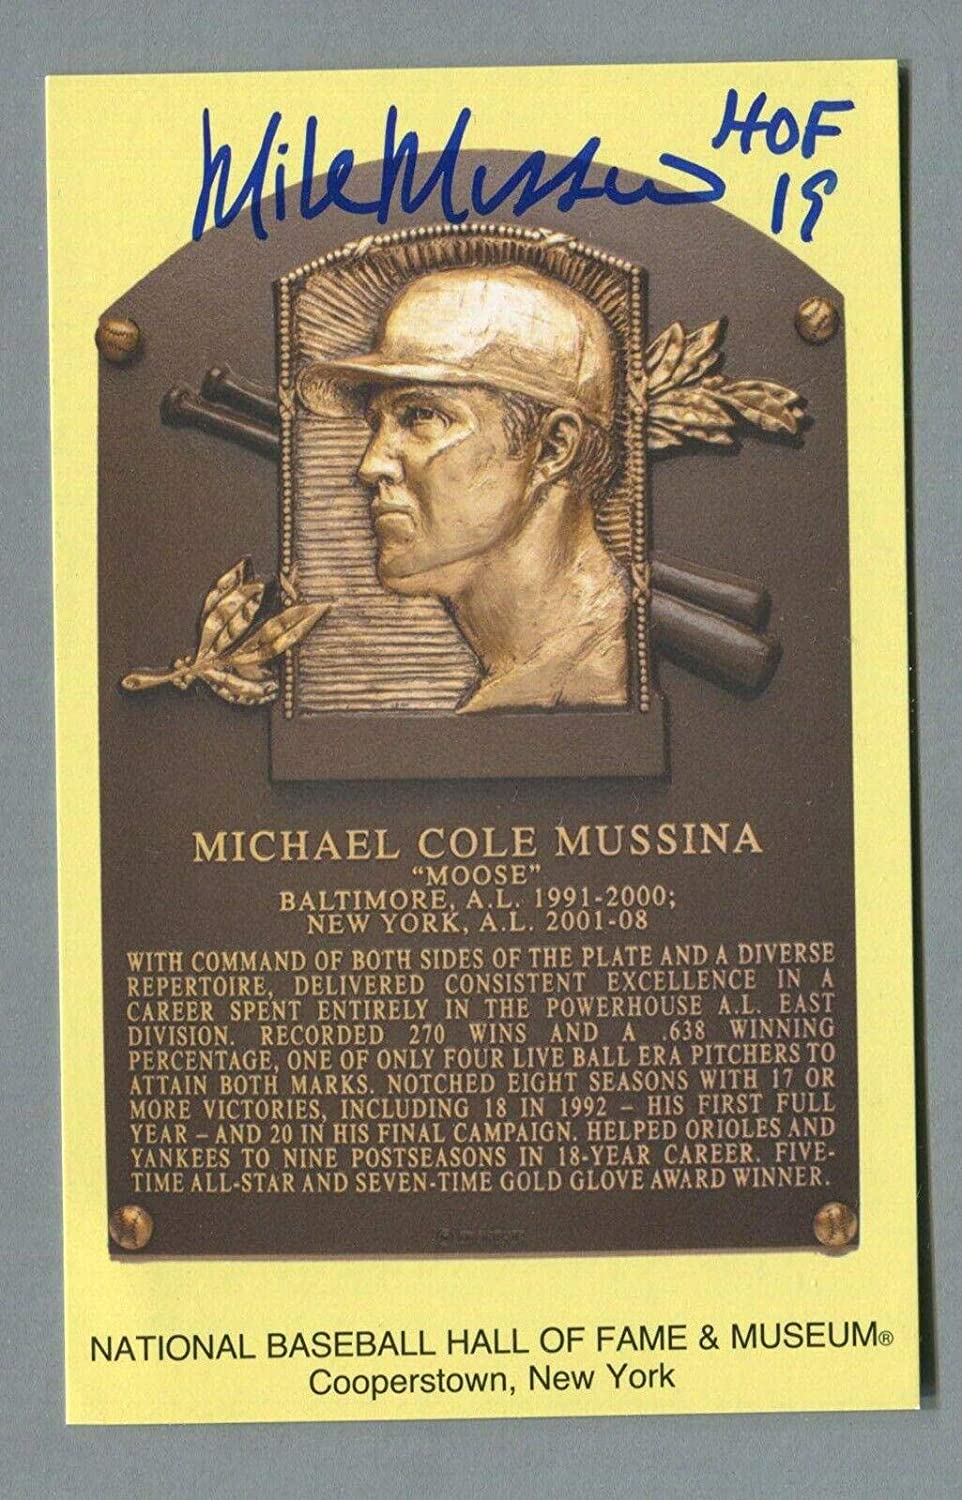 Mike Mussina Signed Inscribed Hall of Fame Yellow Plague Auto B&E Hologram - MLB Autographed Miscellaneous Items